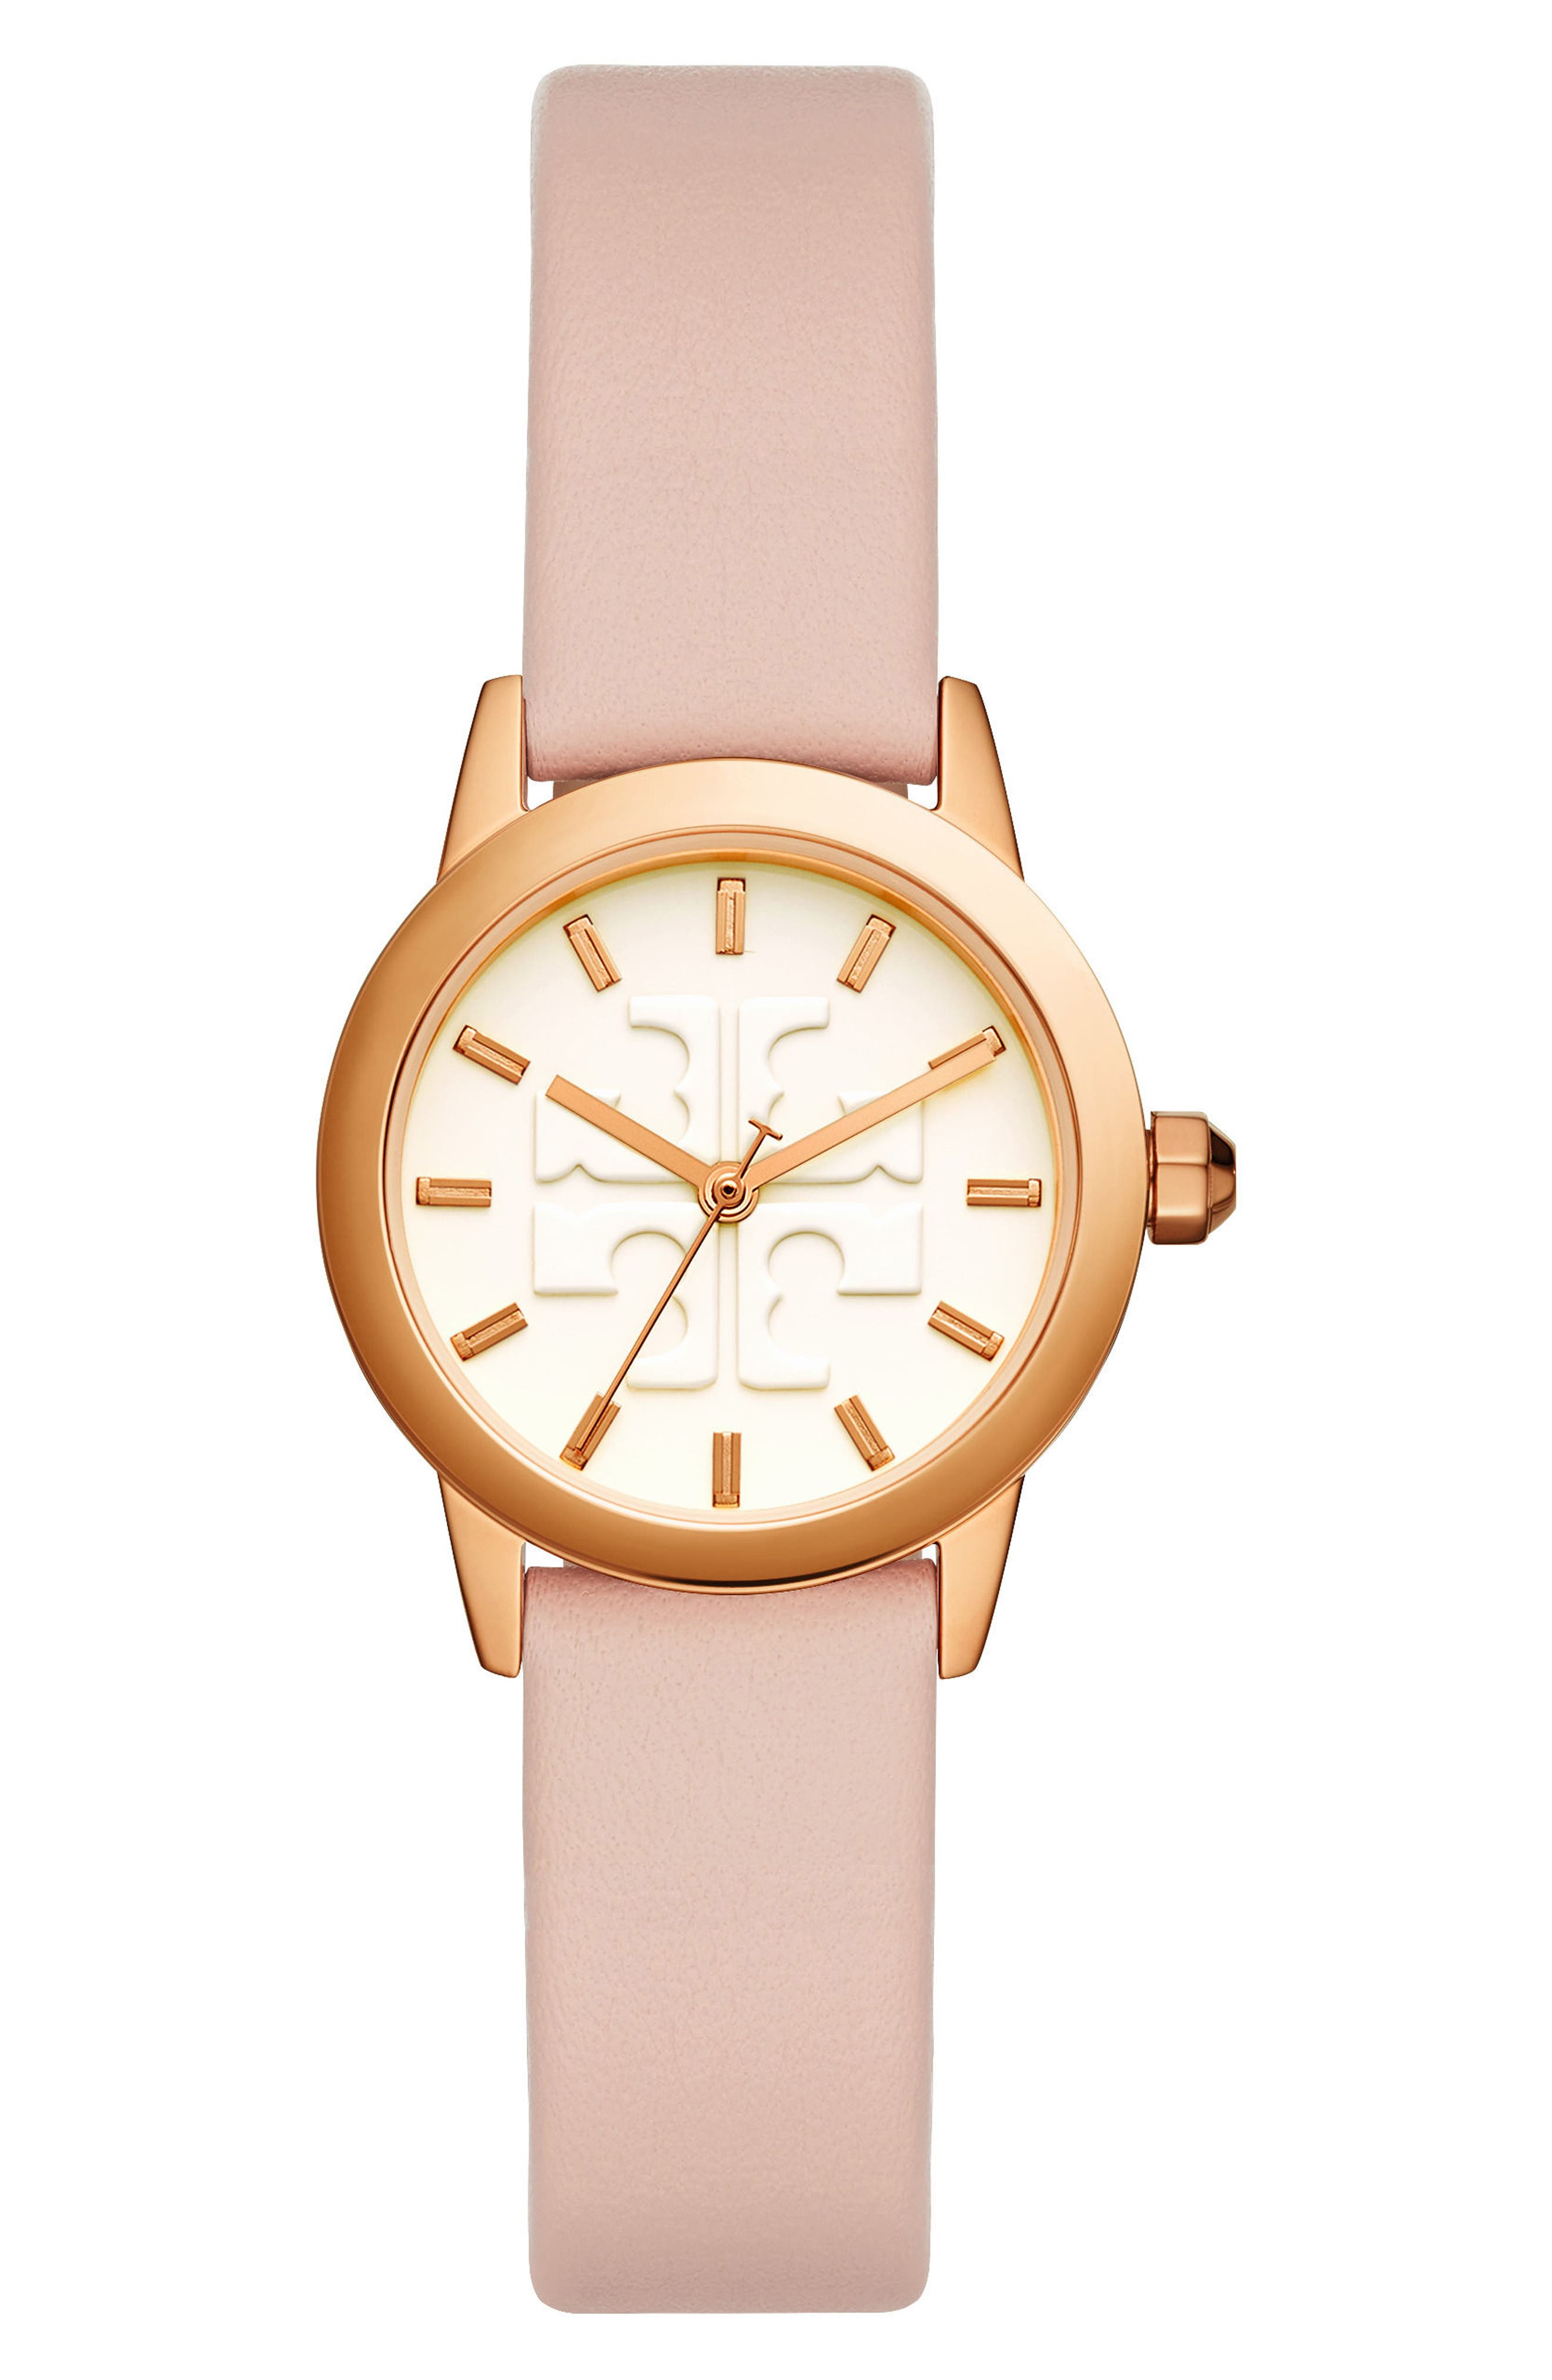 TORY BURCH, Gigi Leather Strap Watch, 28mm, Main thumbnail 1, color, PINK/ CREAM/ ROSE GOLD